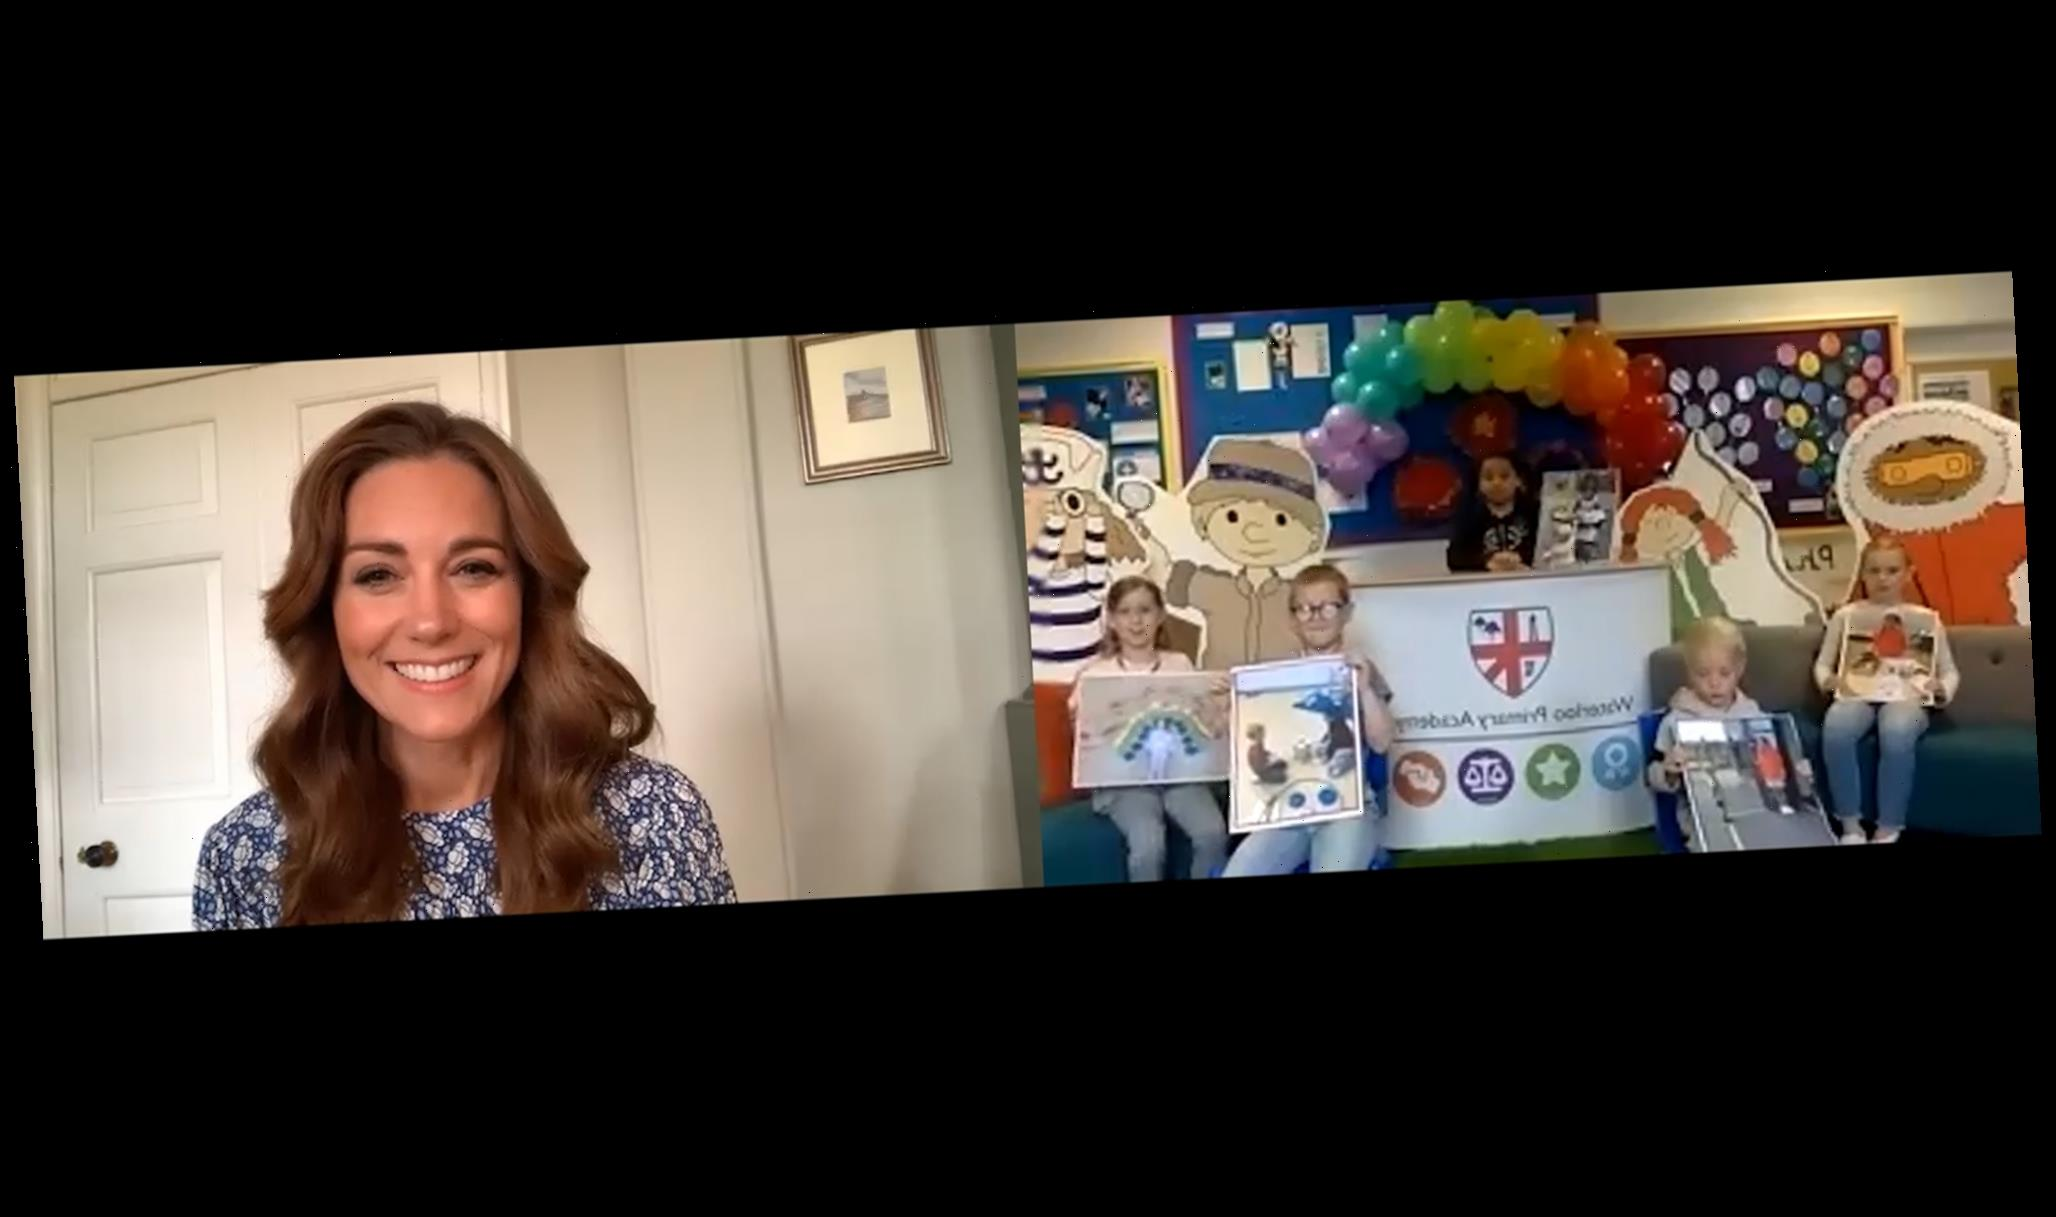 Kate Middleton Talks About the 'Ups and Downs' of Lockdown During Candid Virtual School Assembly